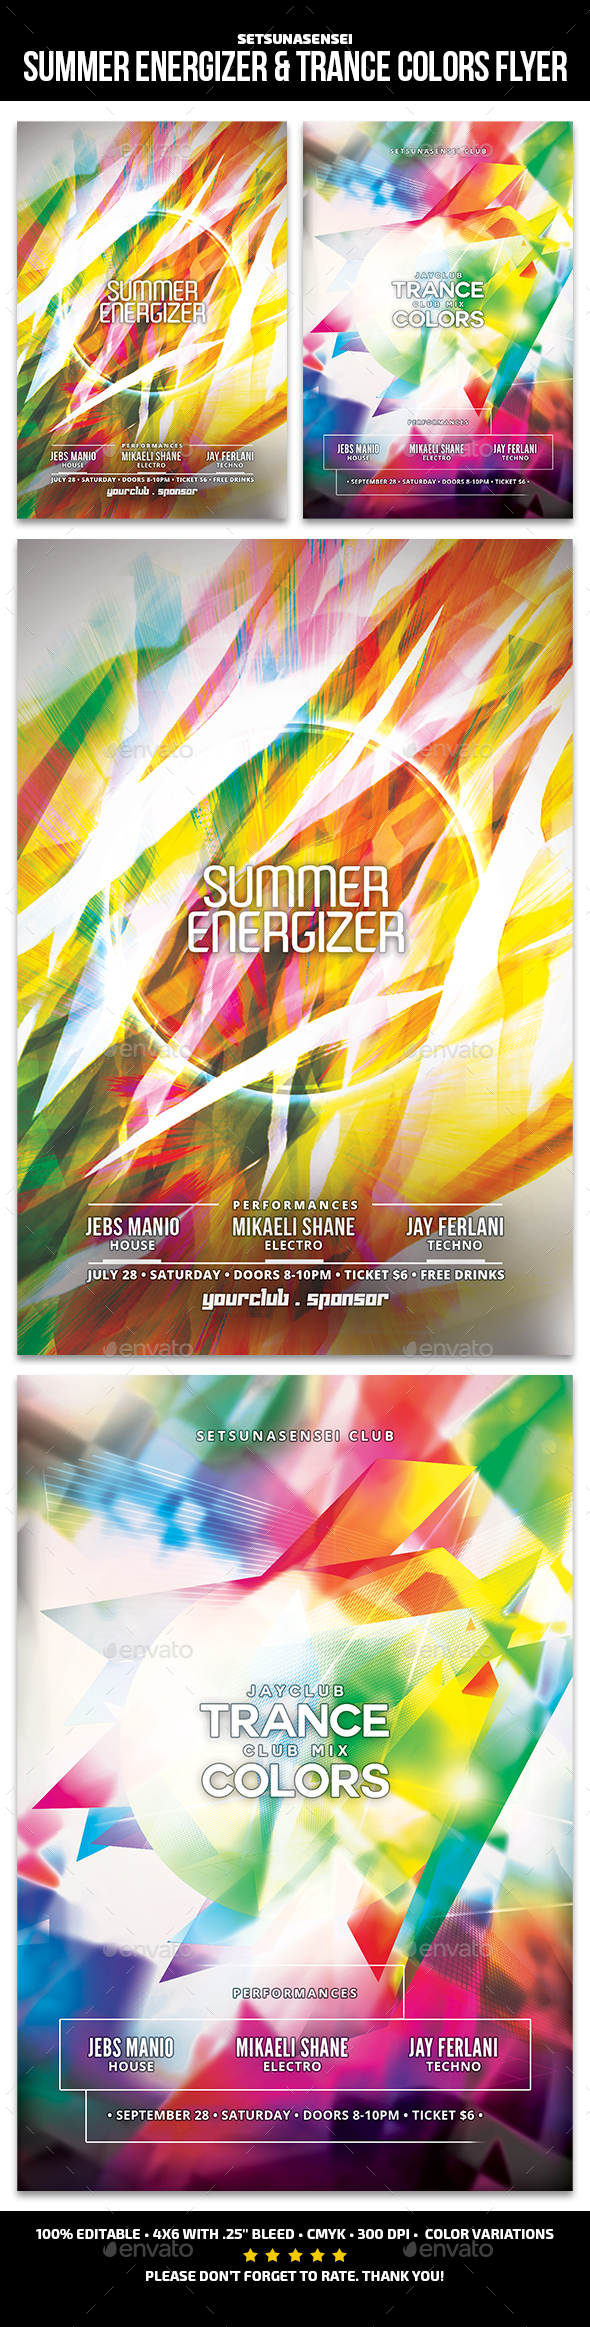 Summer Energizer & Trance Colors Flyer - Clubs & Parties Events